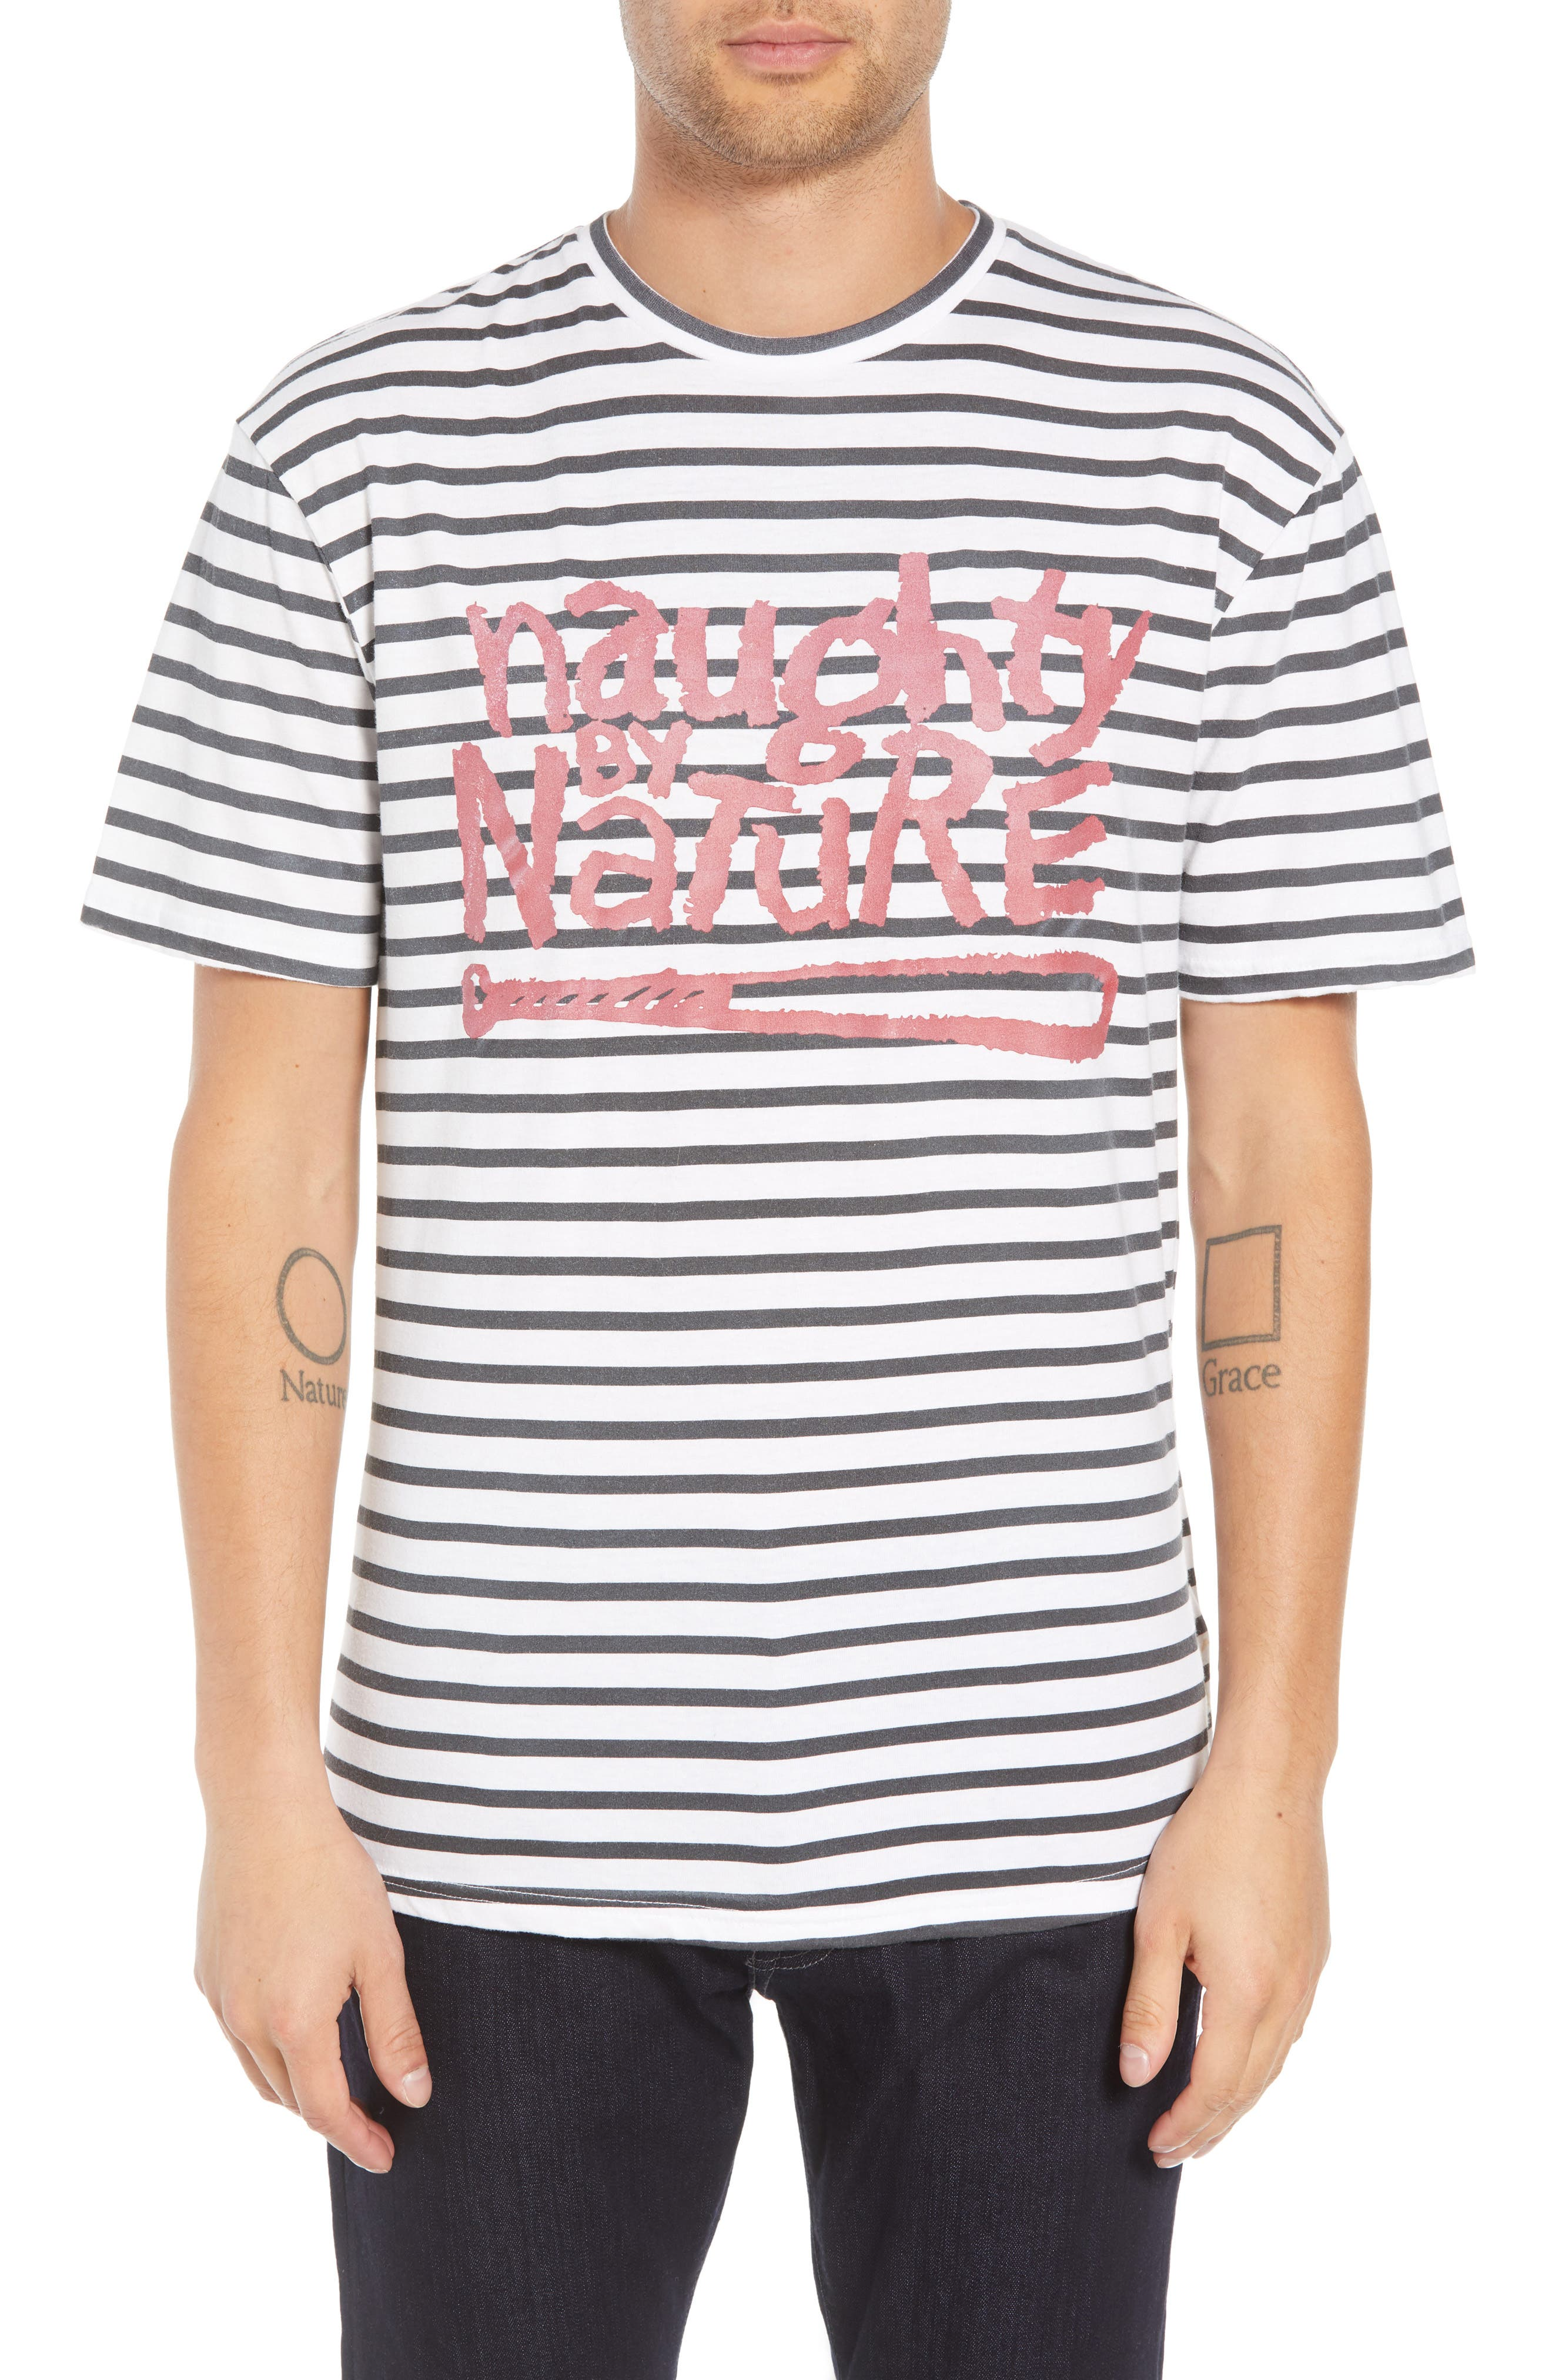 ELEVENPARIS Naughty By Nature Striped Graphic T-Shirt in White